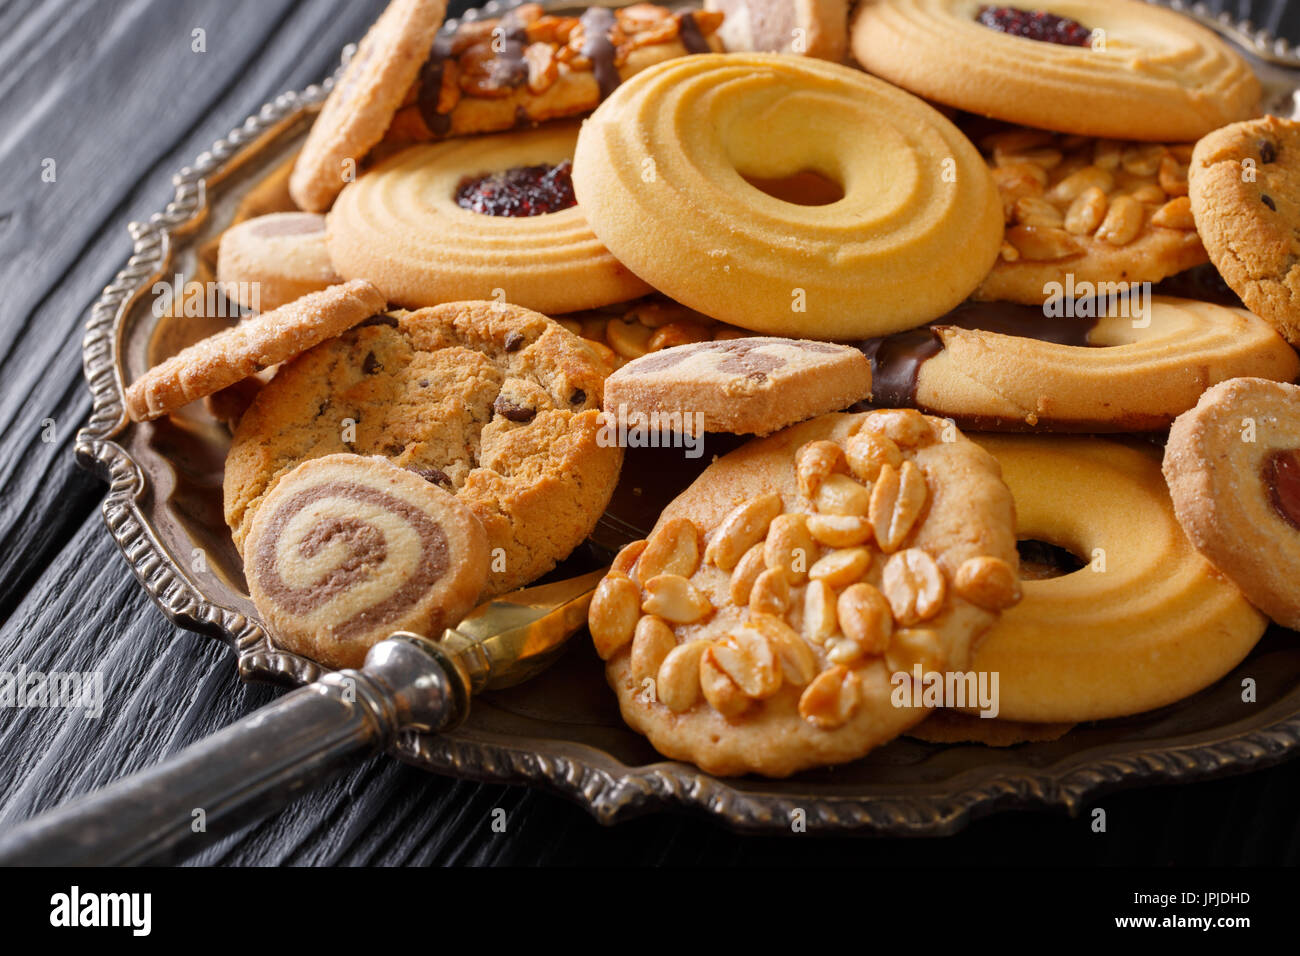 Mixed cookies with chocolate, jelly and nuts on the plate, selective focus. horizontal - Stock Image